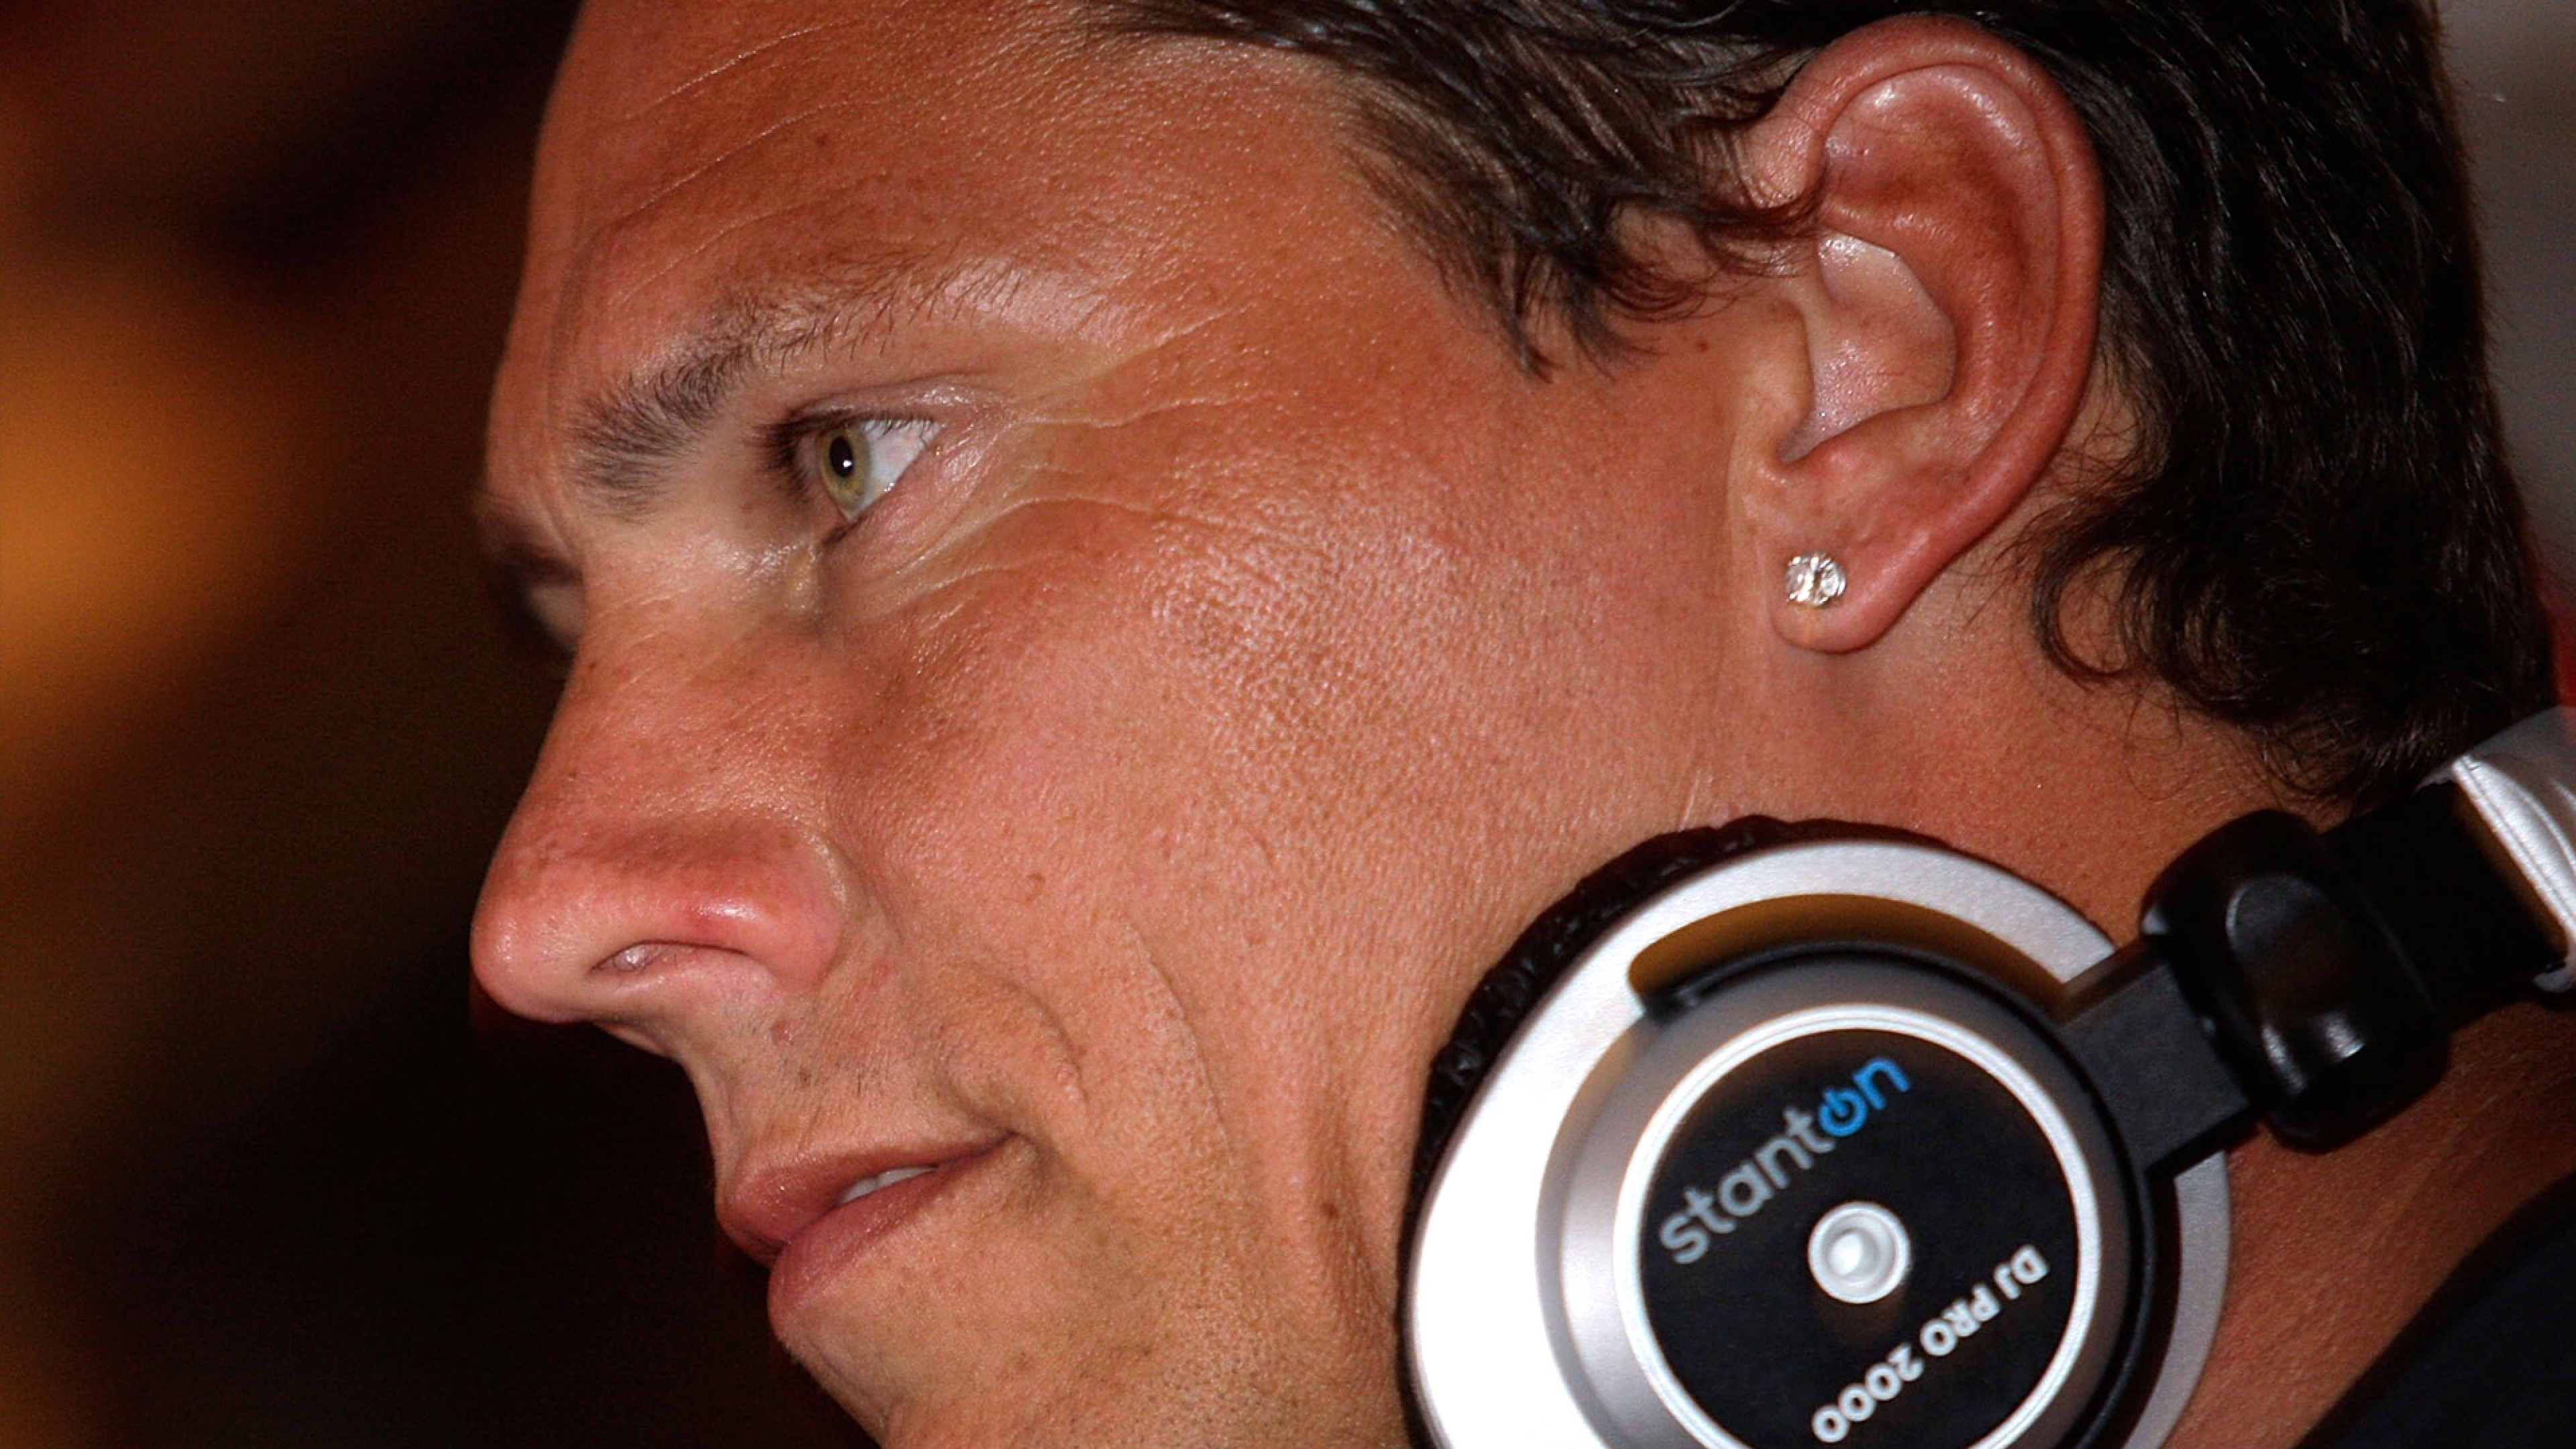 Preview wallpaper dj tiesto, face, headphones, look, earrings 3840×2160